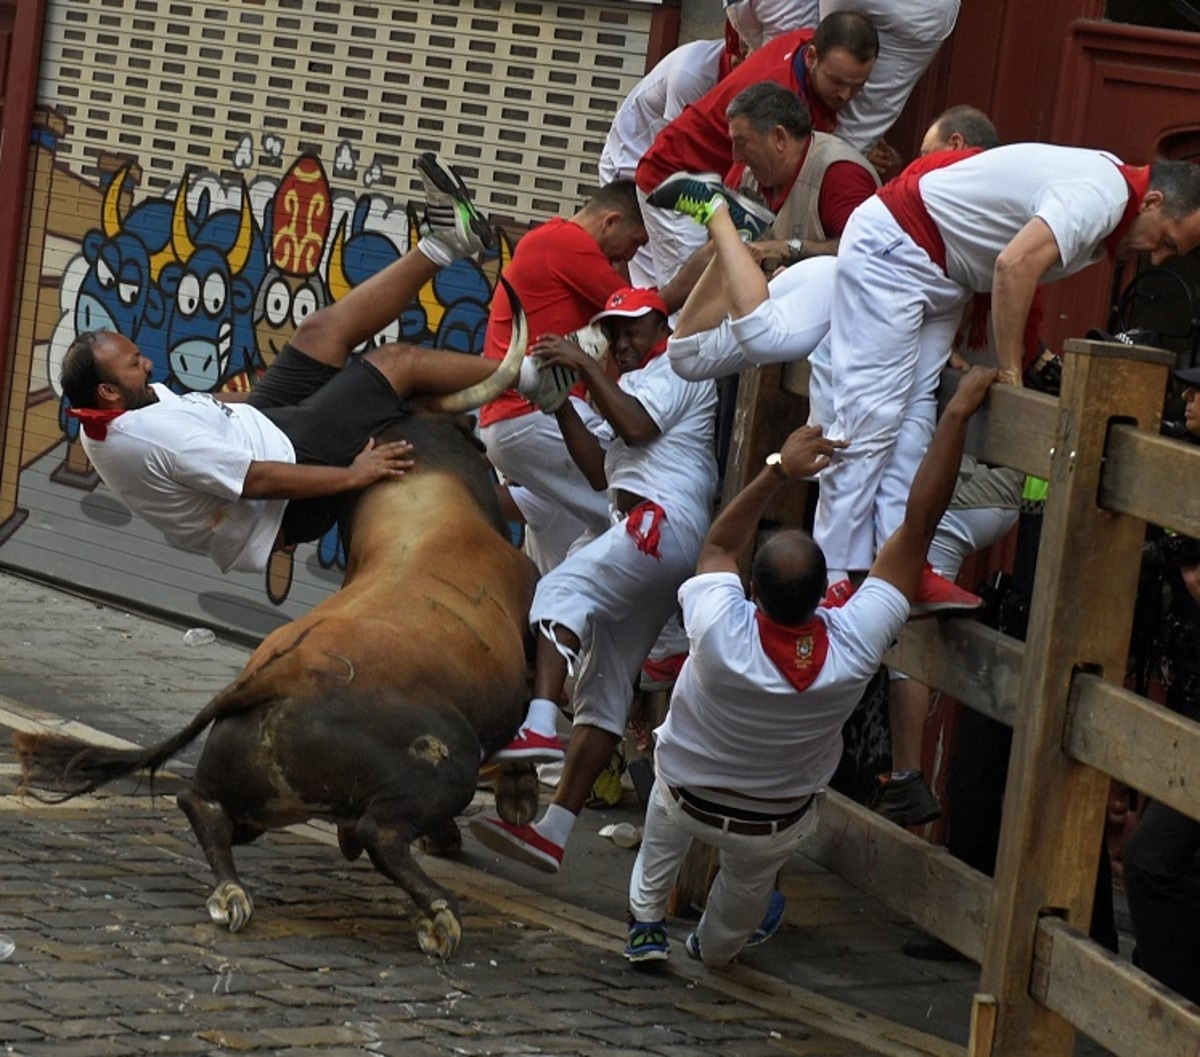 A runner is thrown by a Cebada Gago fighting bull at the Estafeta corner during the second running of the bulls at the San Fermin festival in Pamplona, northern Spain July 8, 2016. REUTERS/Eloy Alonso